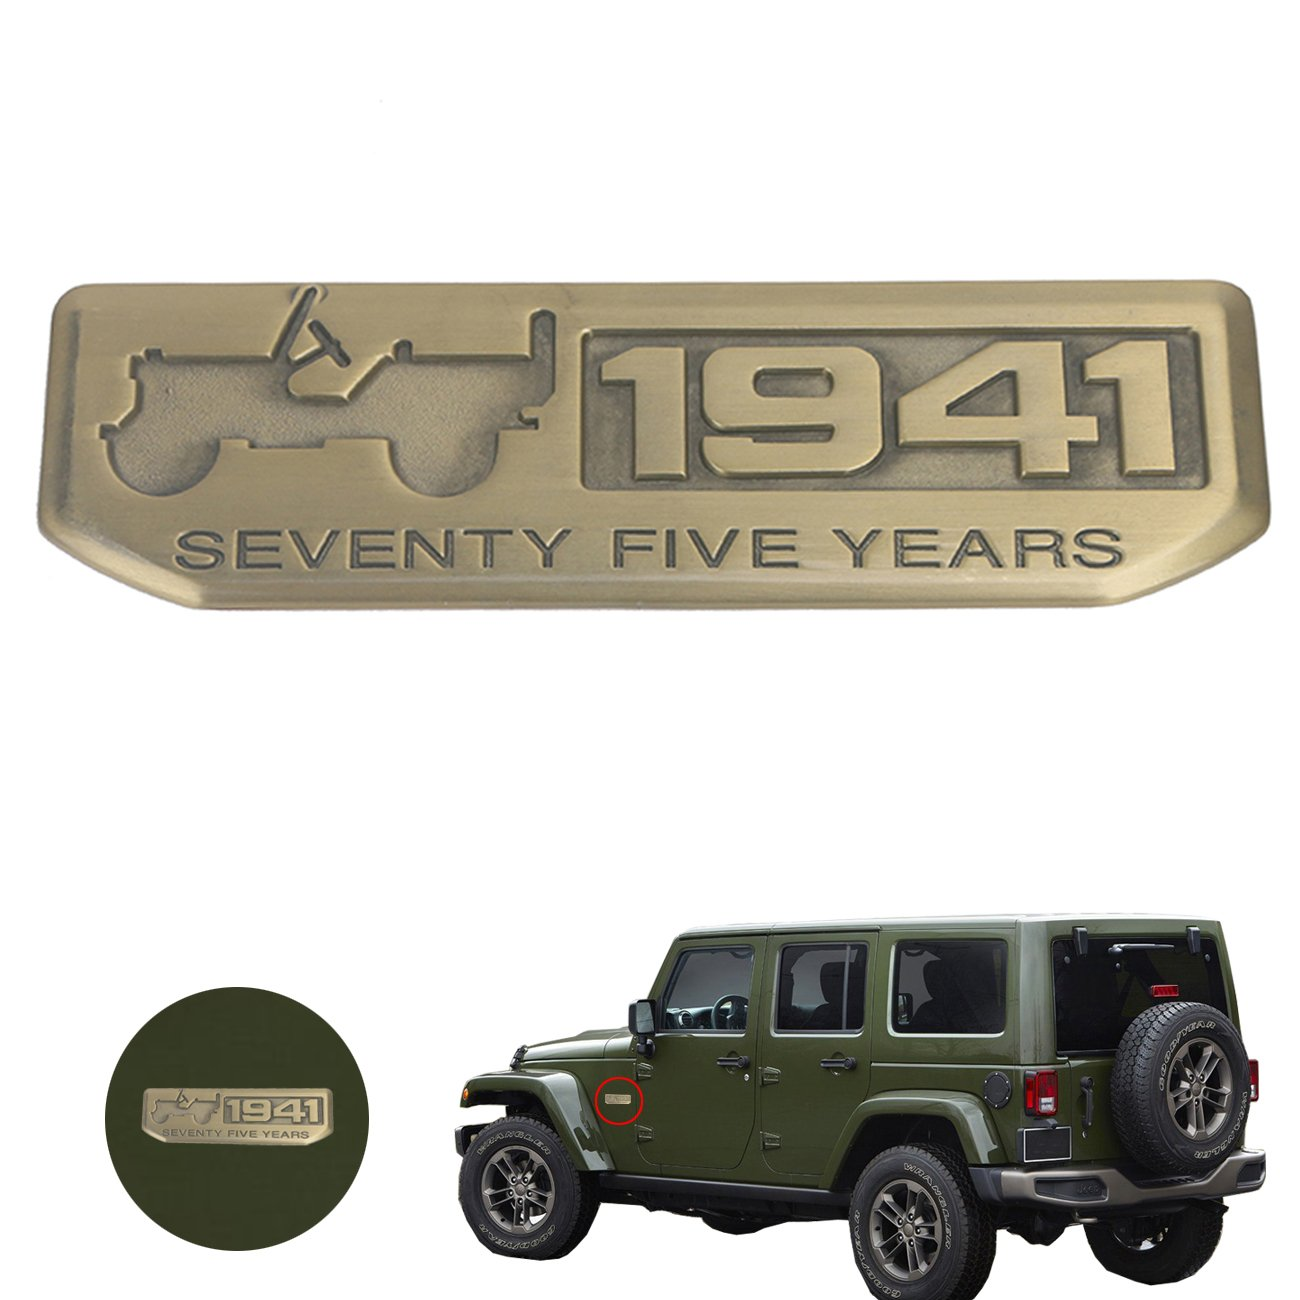 3D Bronze Metal Anniversary KeyChains with 1941 Seventy-Five Years for Jeep Espear